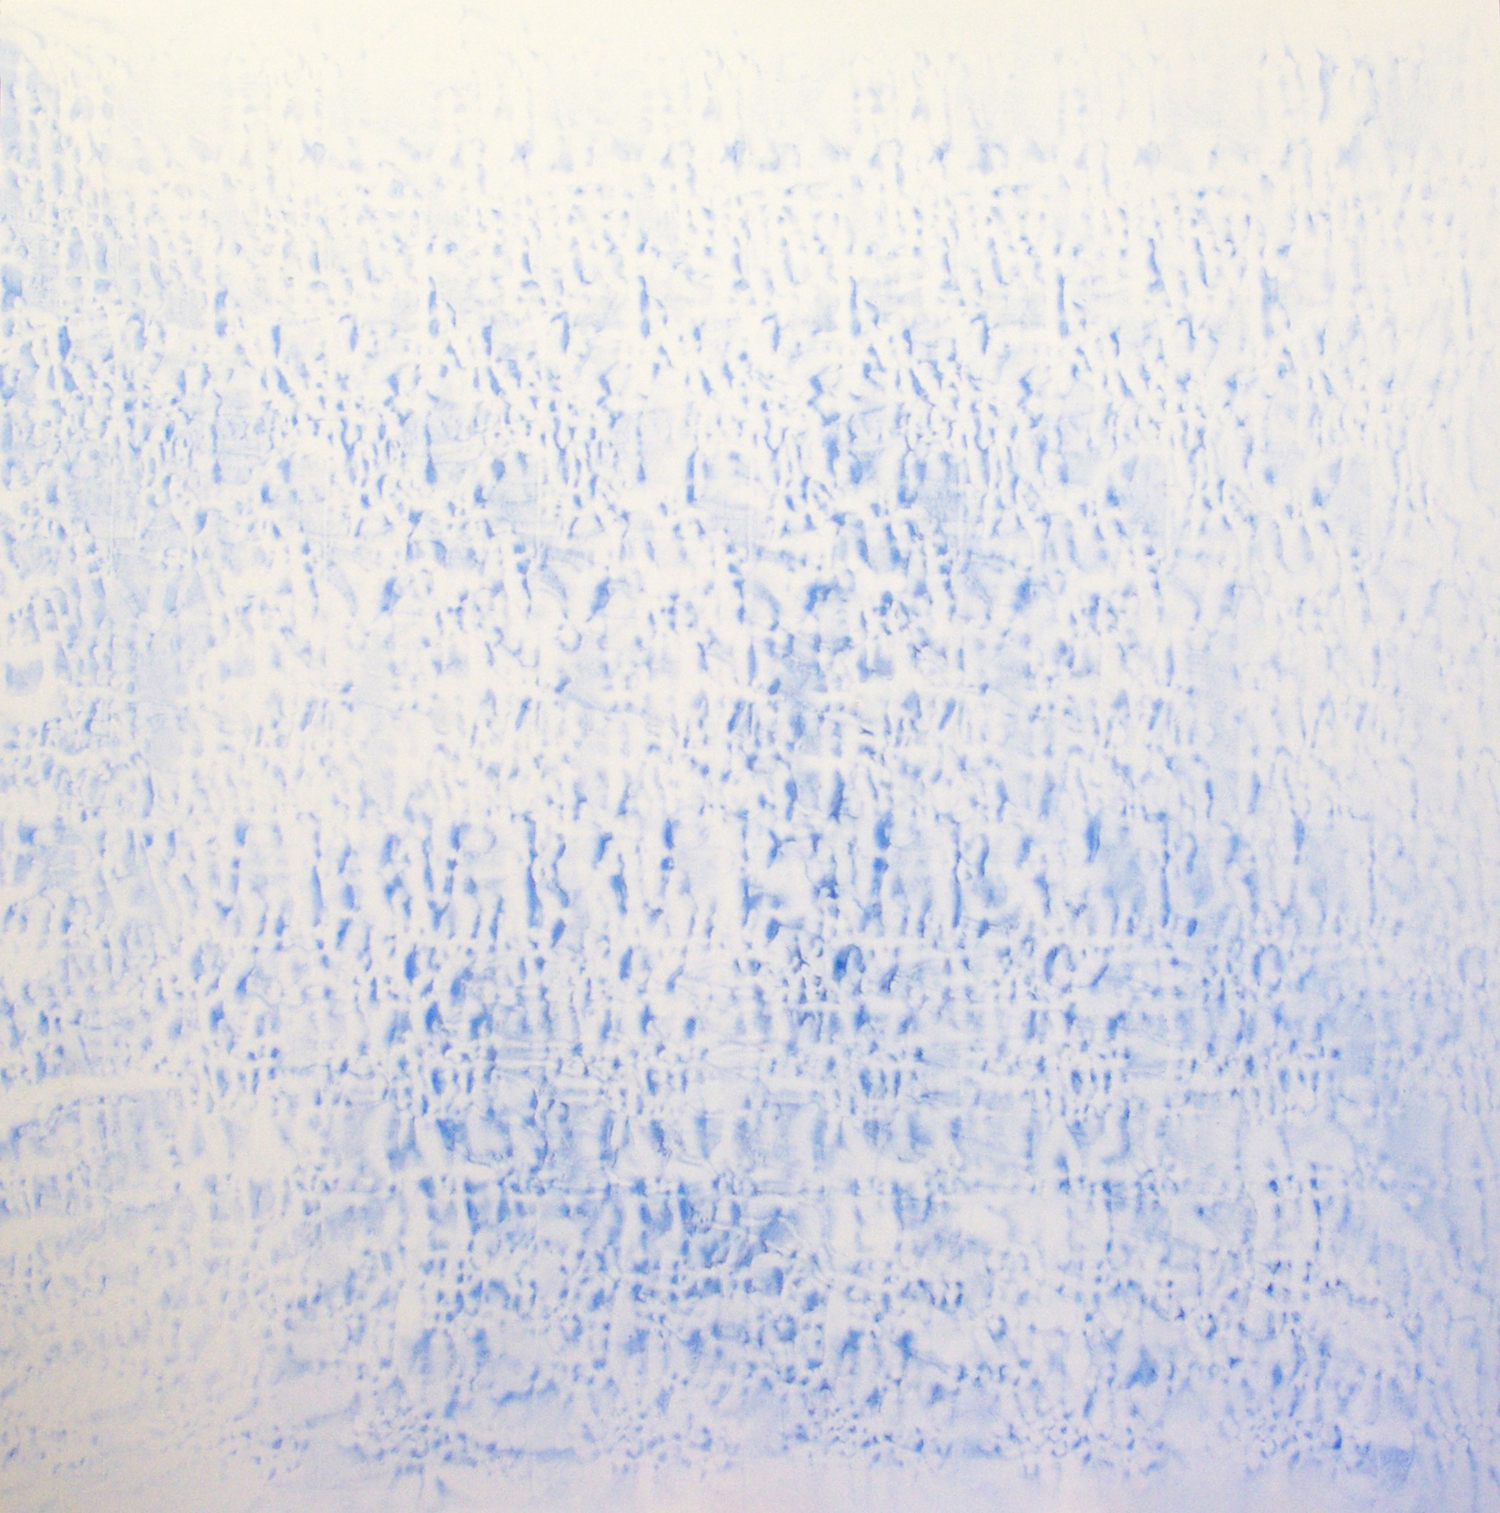 2007-2011  Light #1246 Oil, alkyd, wax on canvas 78x 78 inches  © Vicky Colombet, all rights reserved.